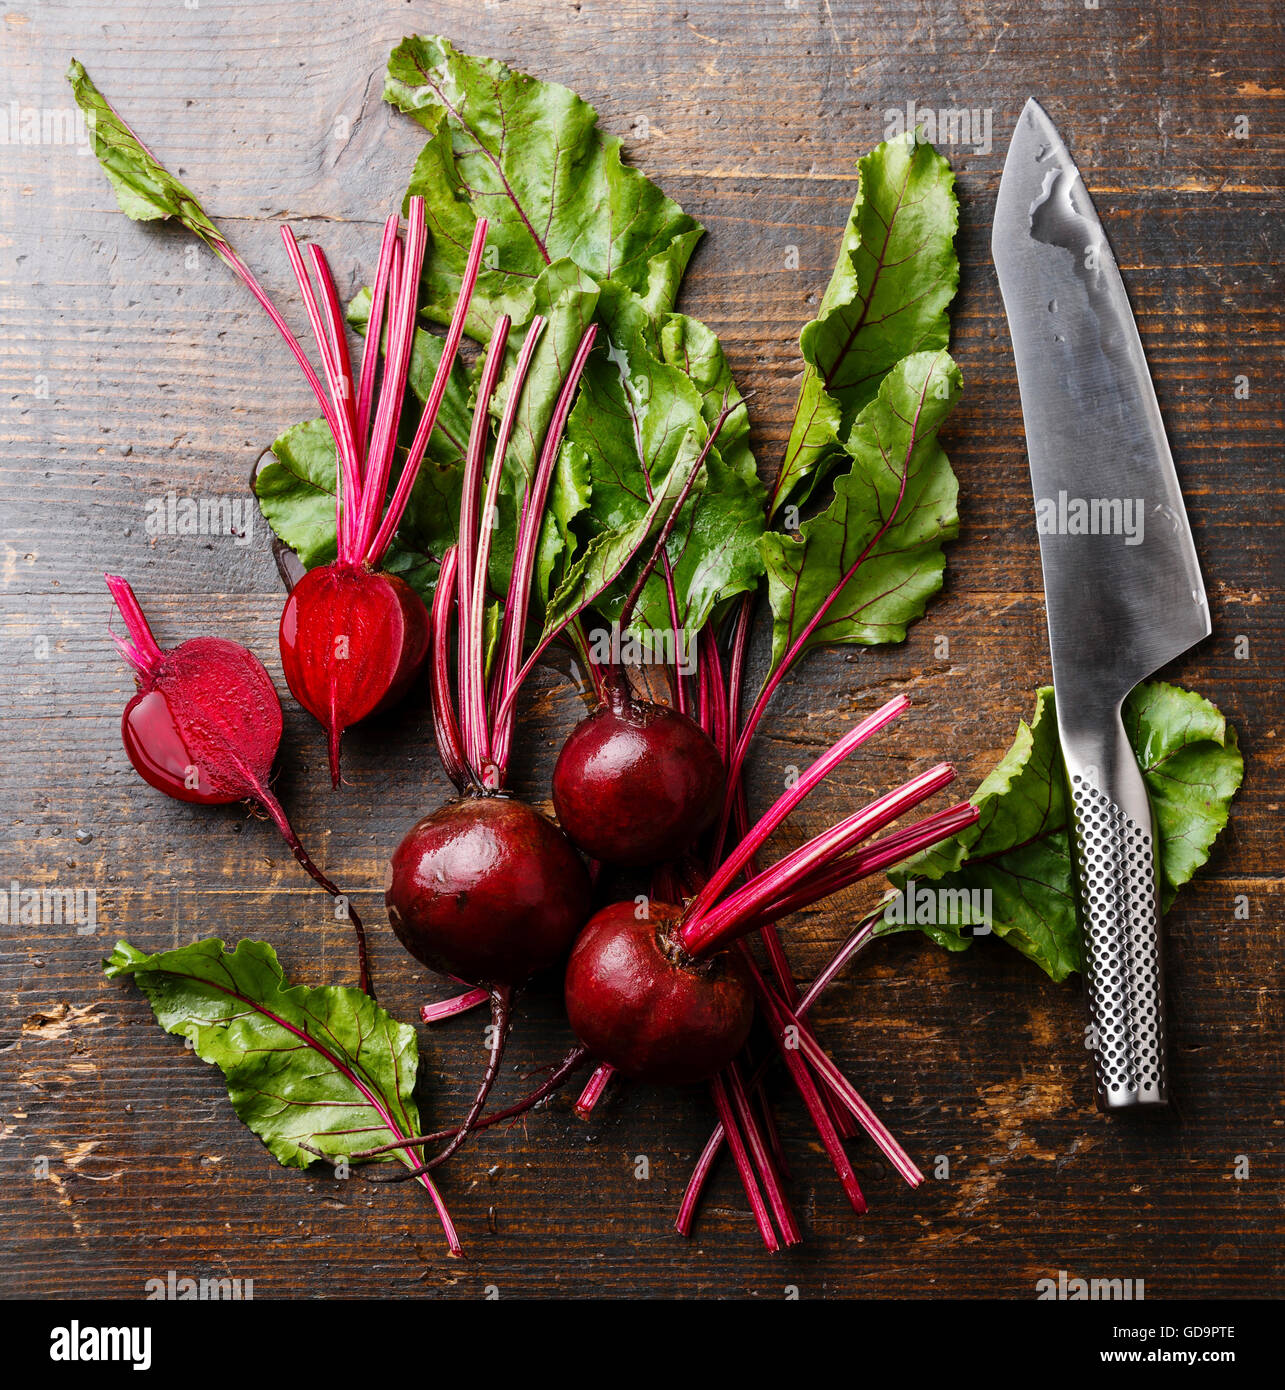 Red Beetroot with herbage green leaves and kitchen knife on wooden background - Stock Image